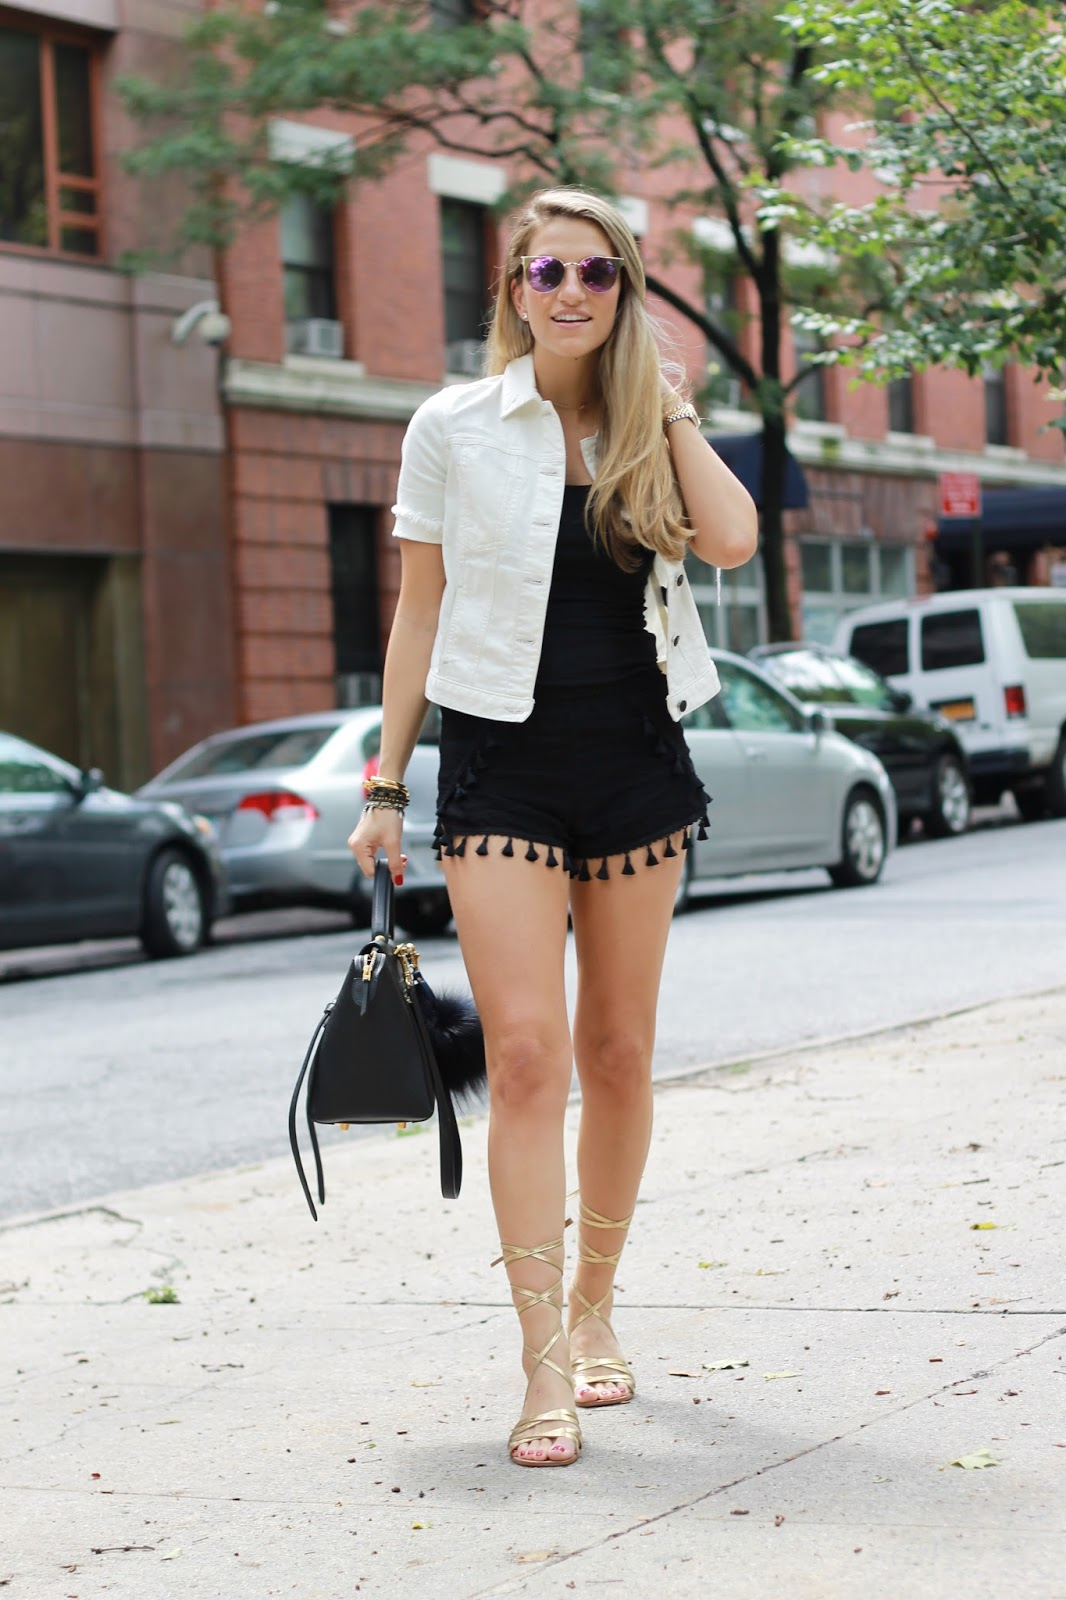 hm bloglovin, tassle shorts, nyc summer style 2015